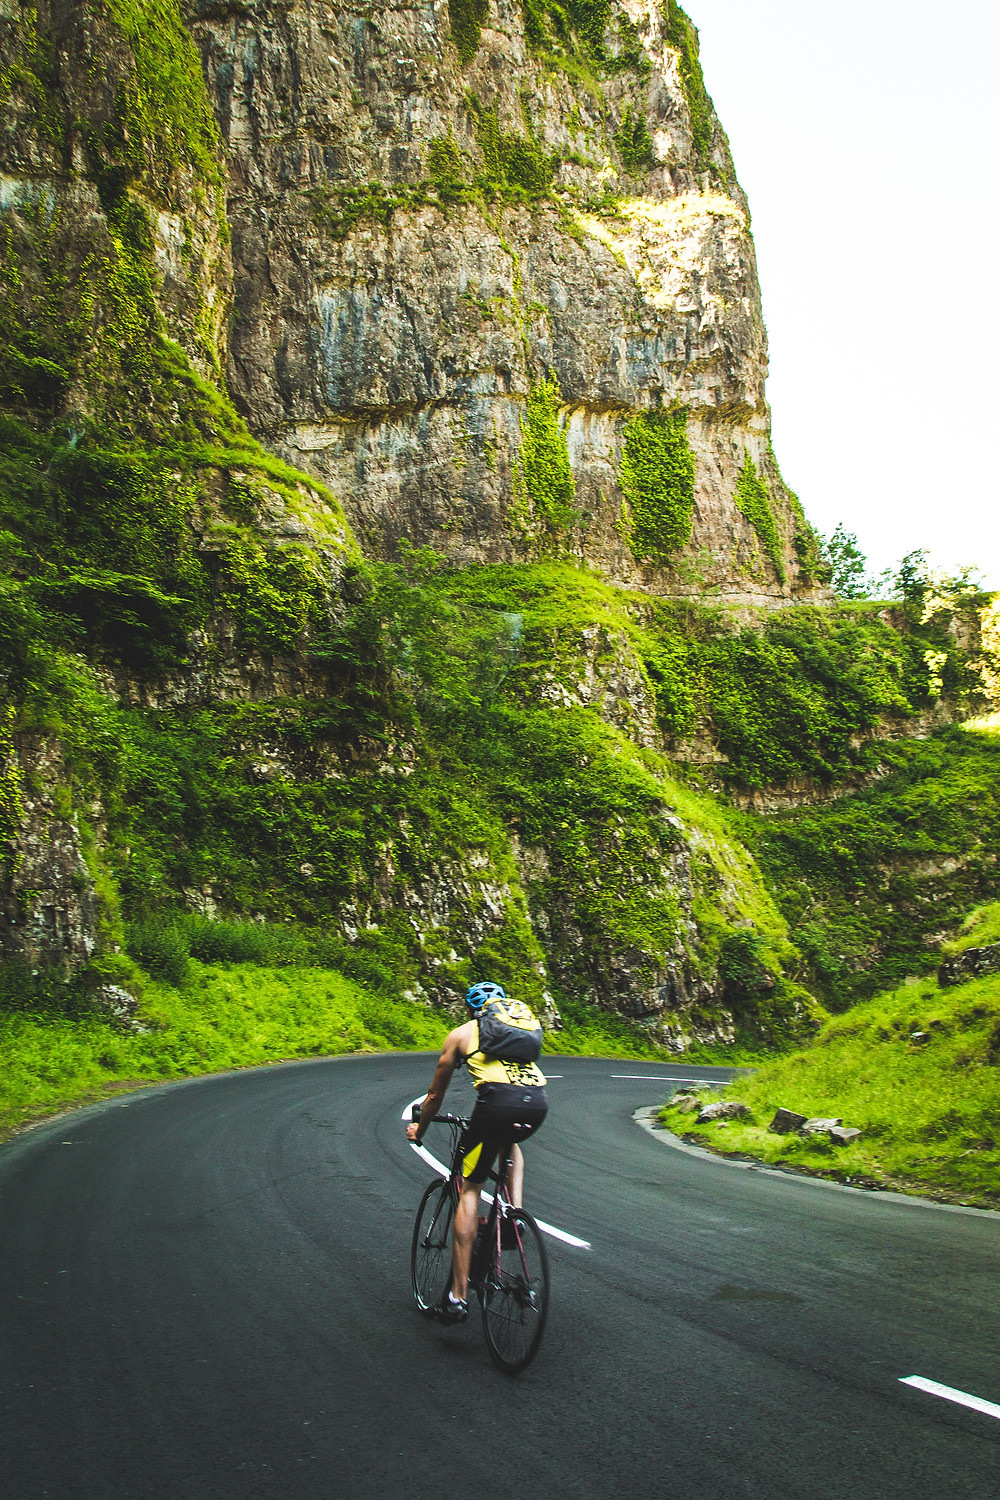 man bicycling by himself on a mountain road